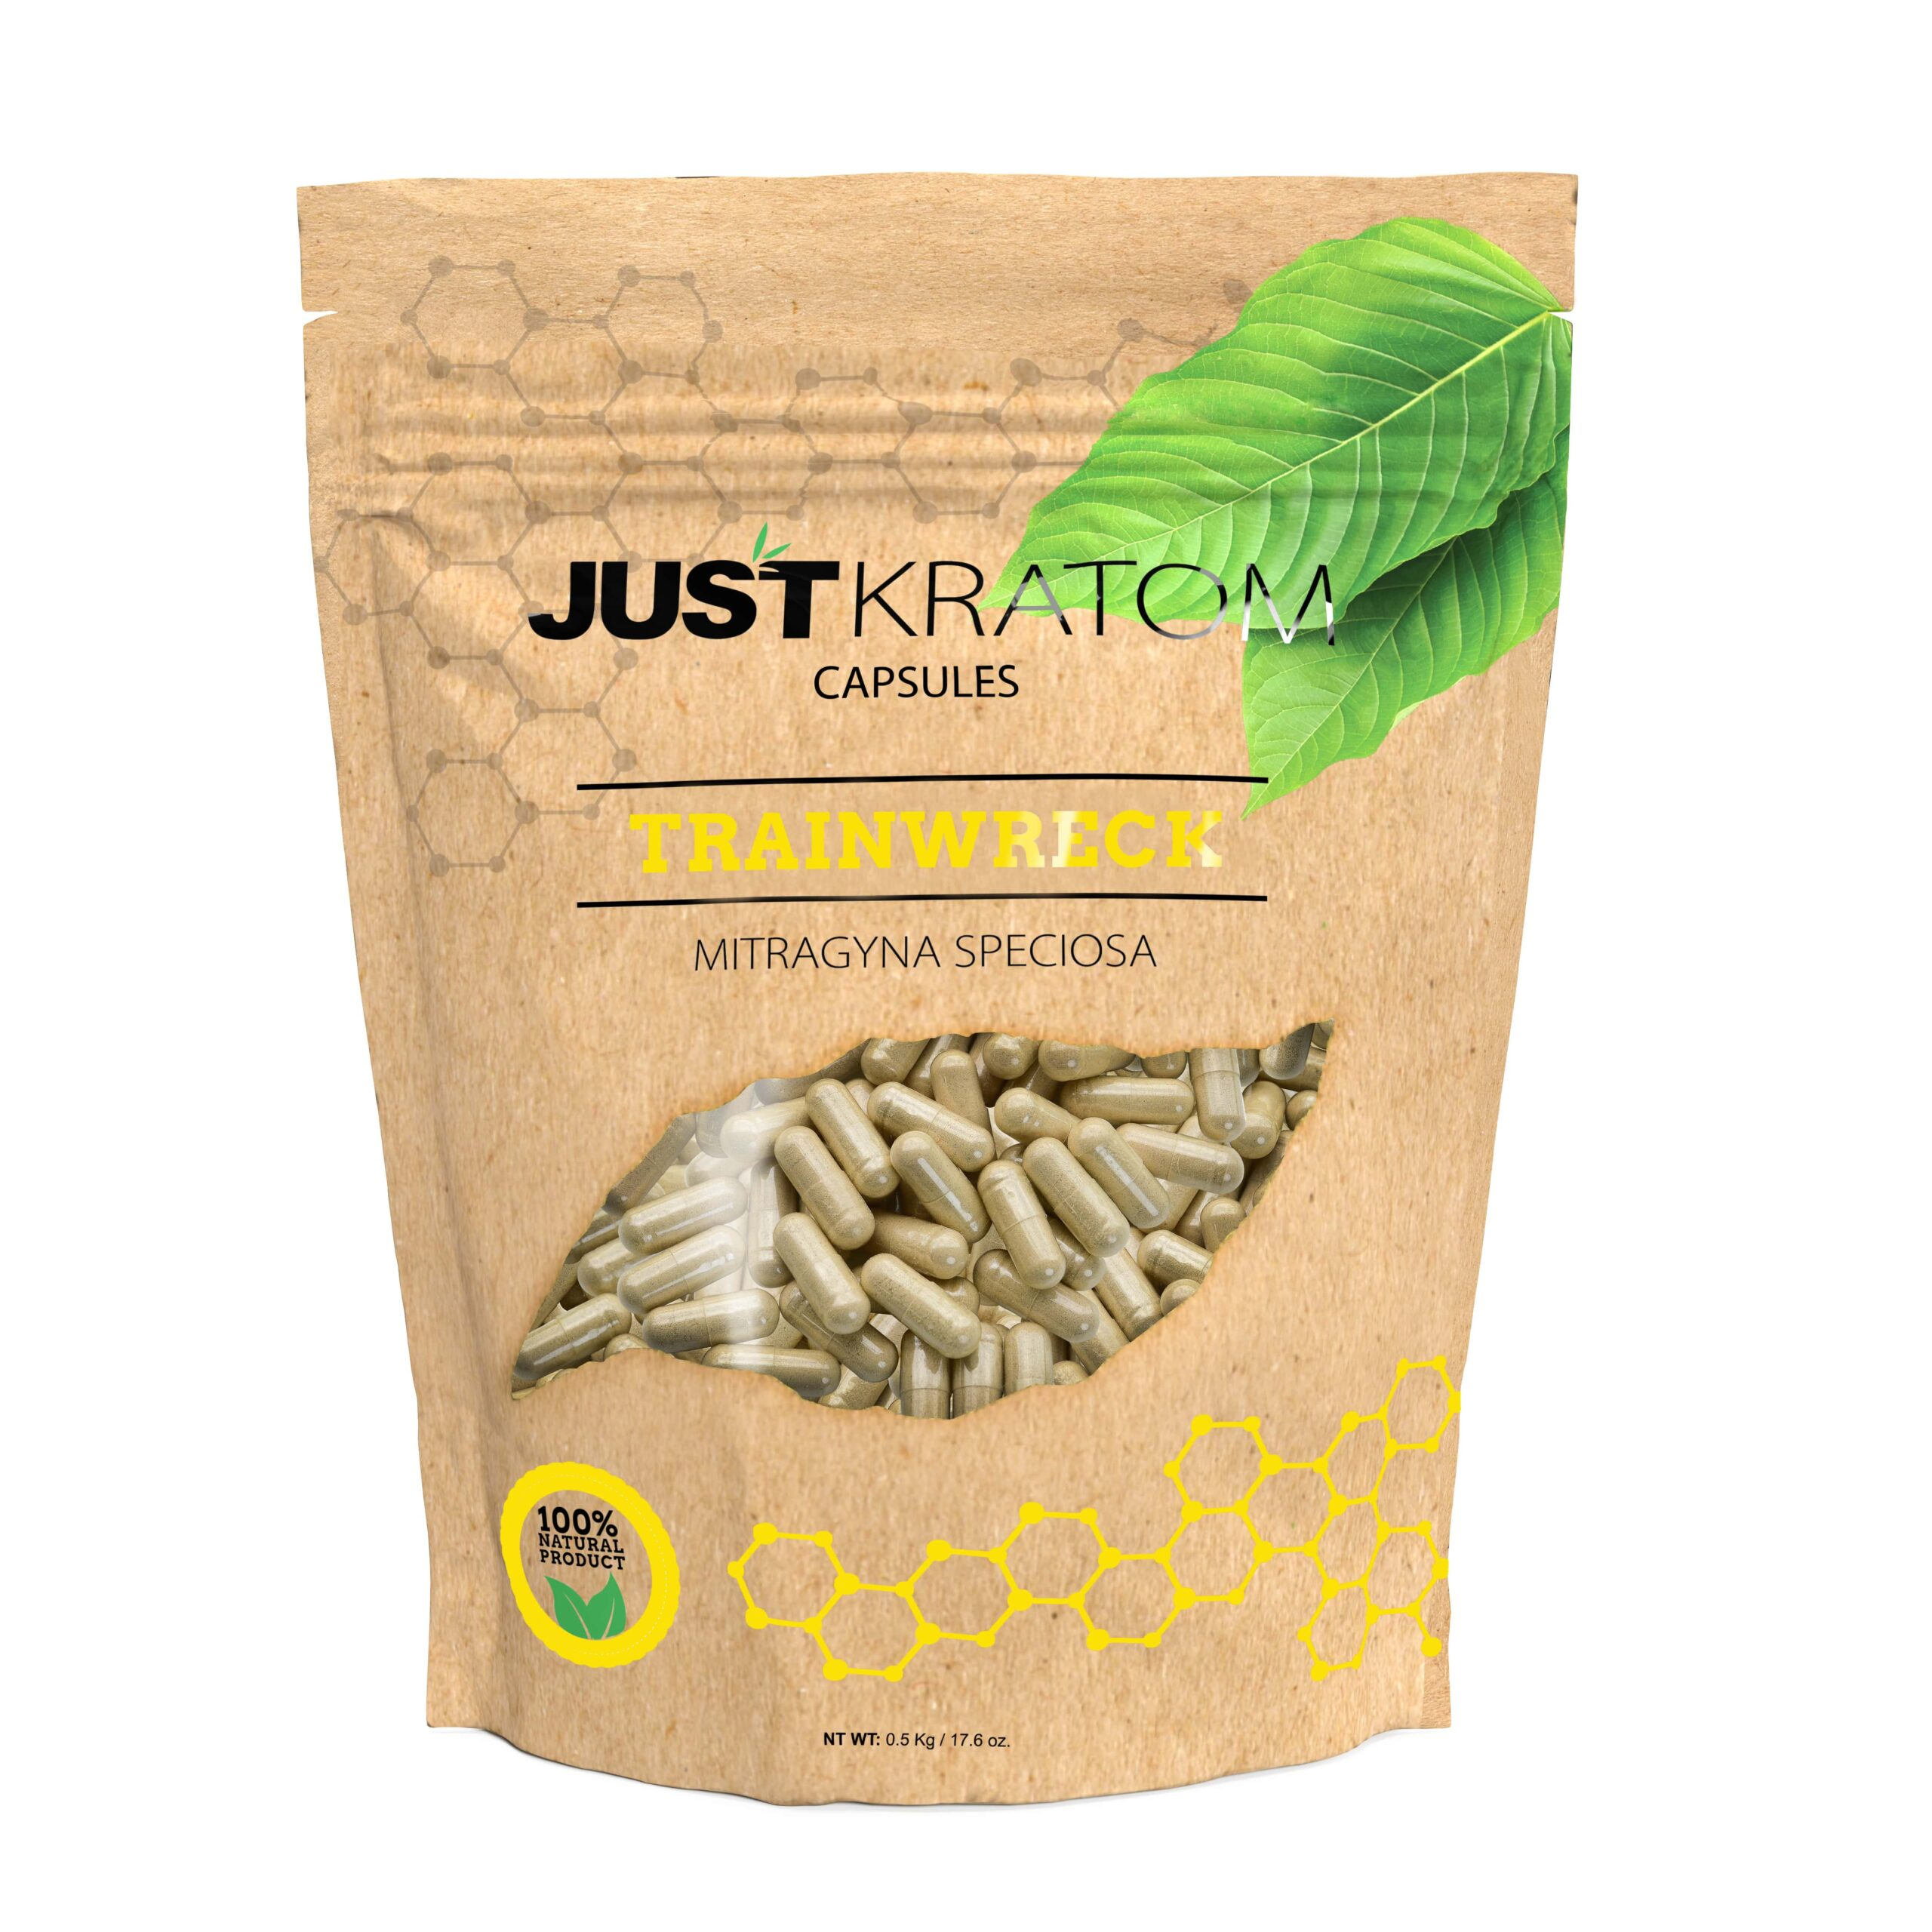 What Is The Best Kratom For Opiate Withdrawal